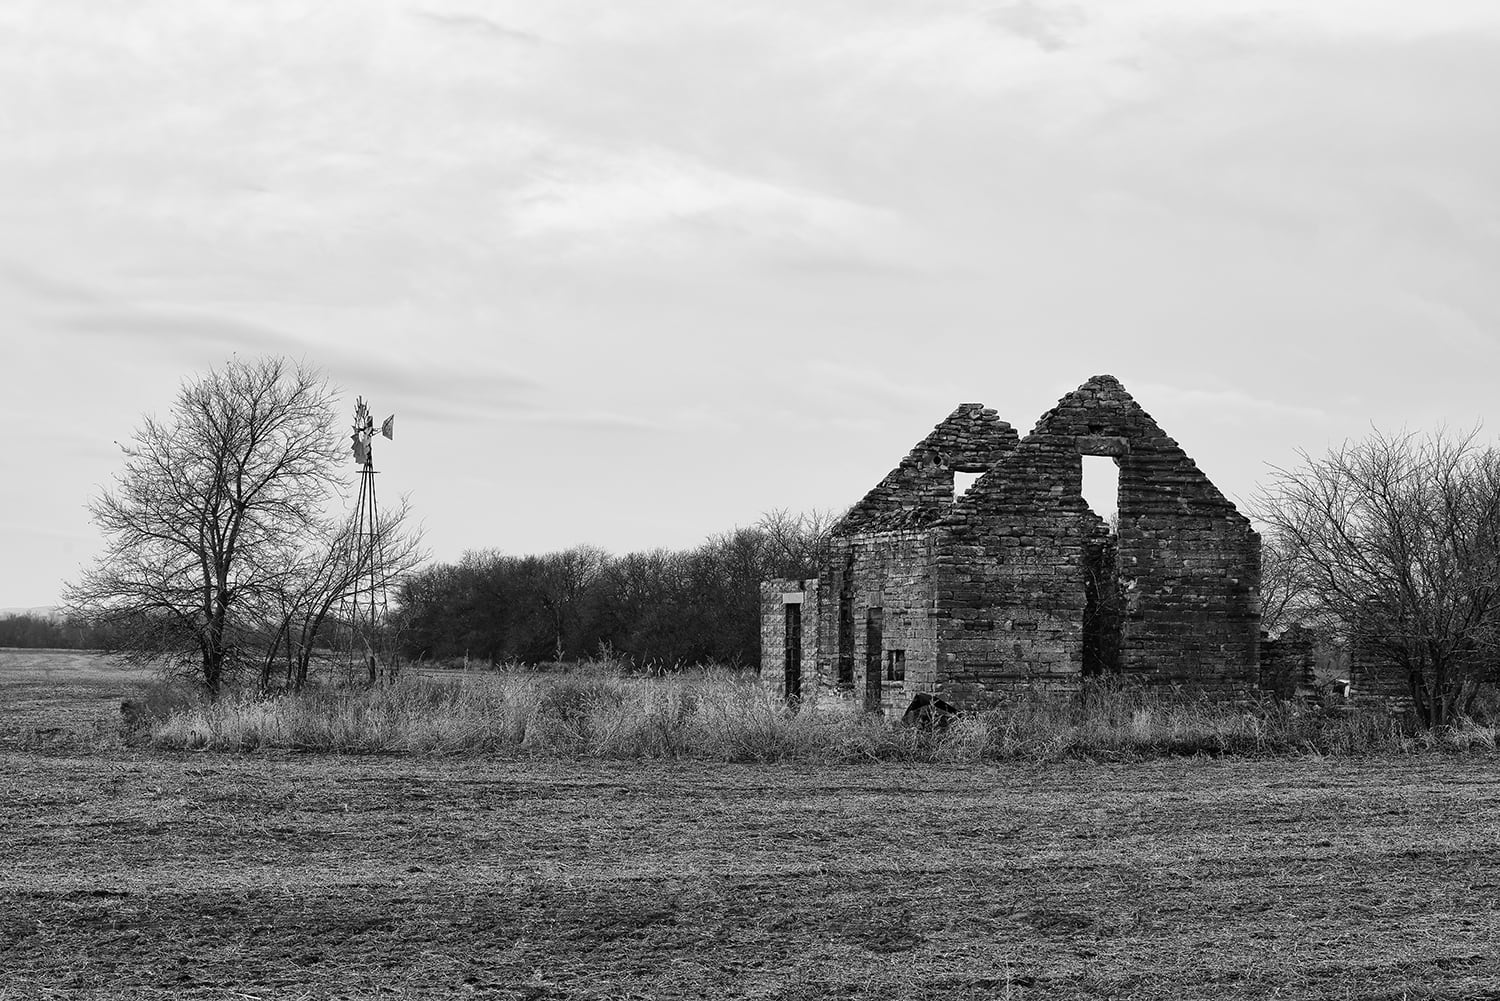 Abandoned Stone Farmhouse in Ruins: black and white photograph by Keith Dotson. Click to buy a photograph.